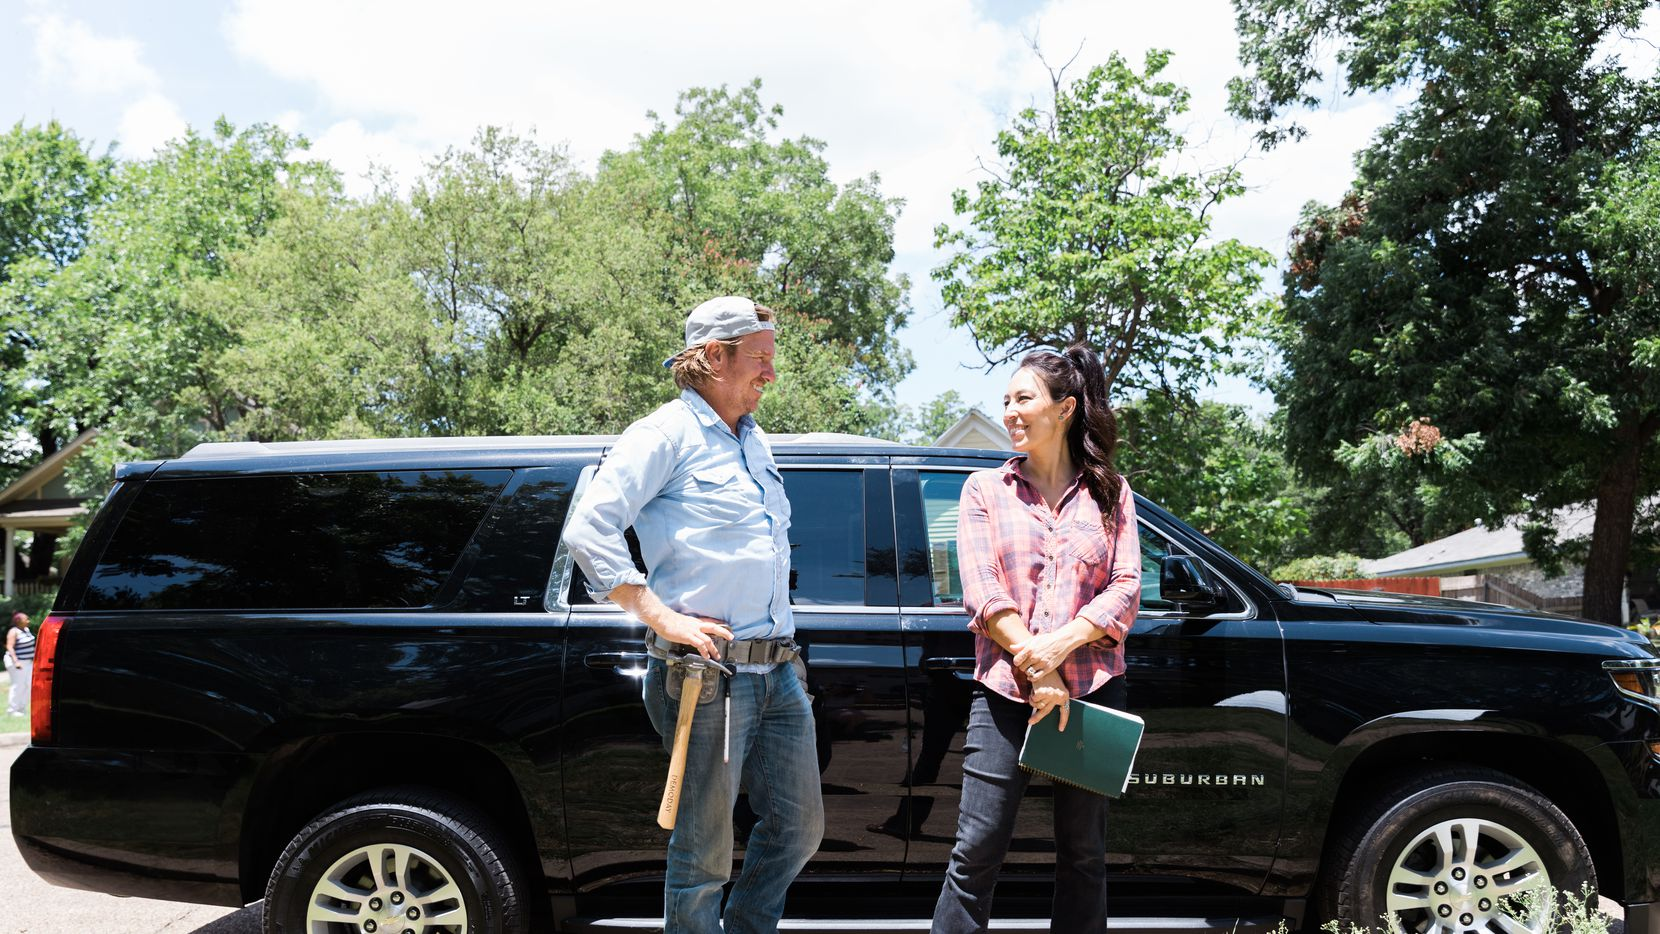 """Chip and Joanna Gaines are bringing back their """"Fixer Upper"""" show in 2021 with the launch of their Magnolia Network with Discovery Inc."""